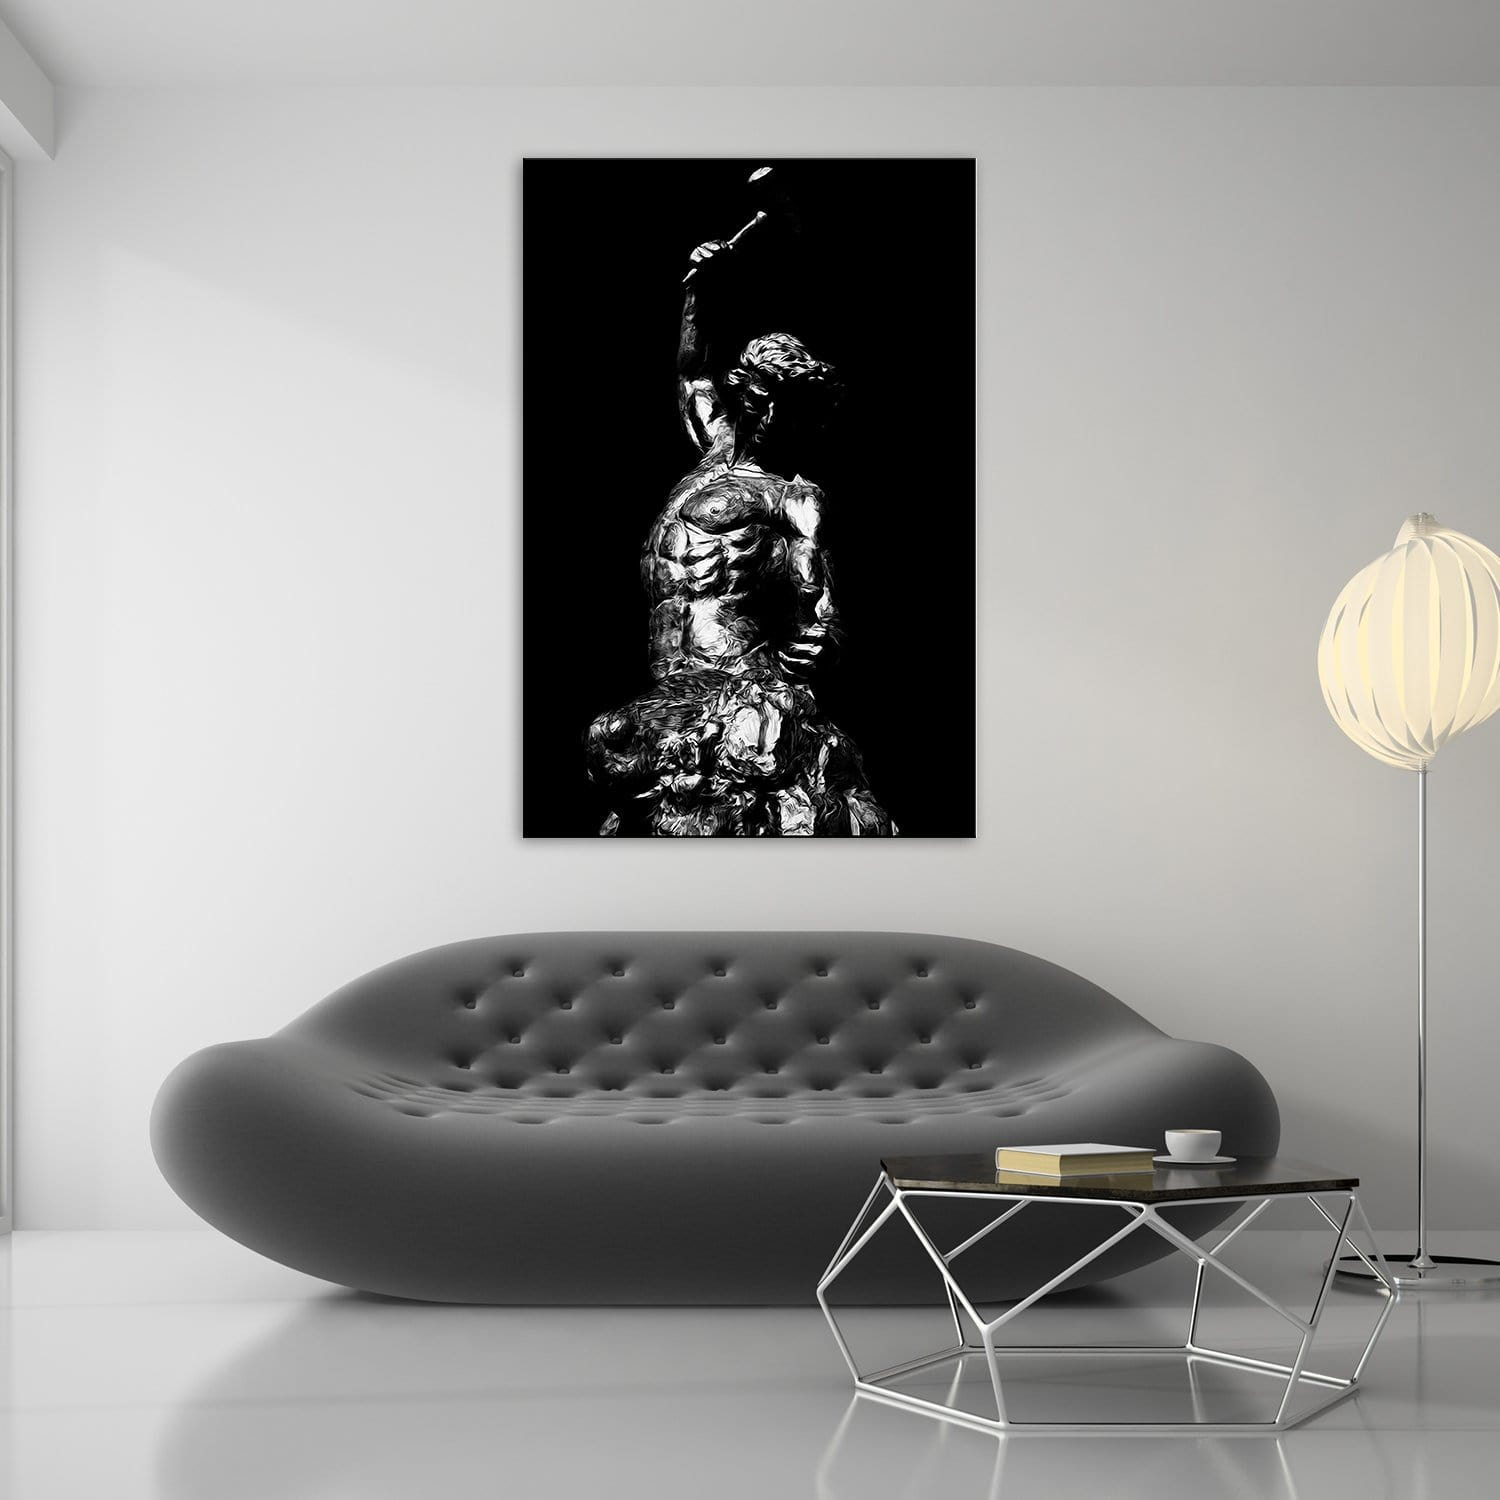 Self Made Man Statue Black White - Framed Canvas Painting Wall Art Office Decor, large modern pop artwork for home or office, Entrepreneur Inspirational and motivational Quotes on Canvas great for man cave or home. Perfect for Artwork Addicts. Made in USA, FREE Shipping.